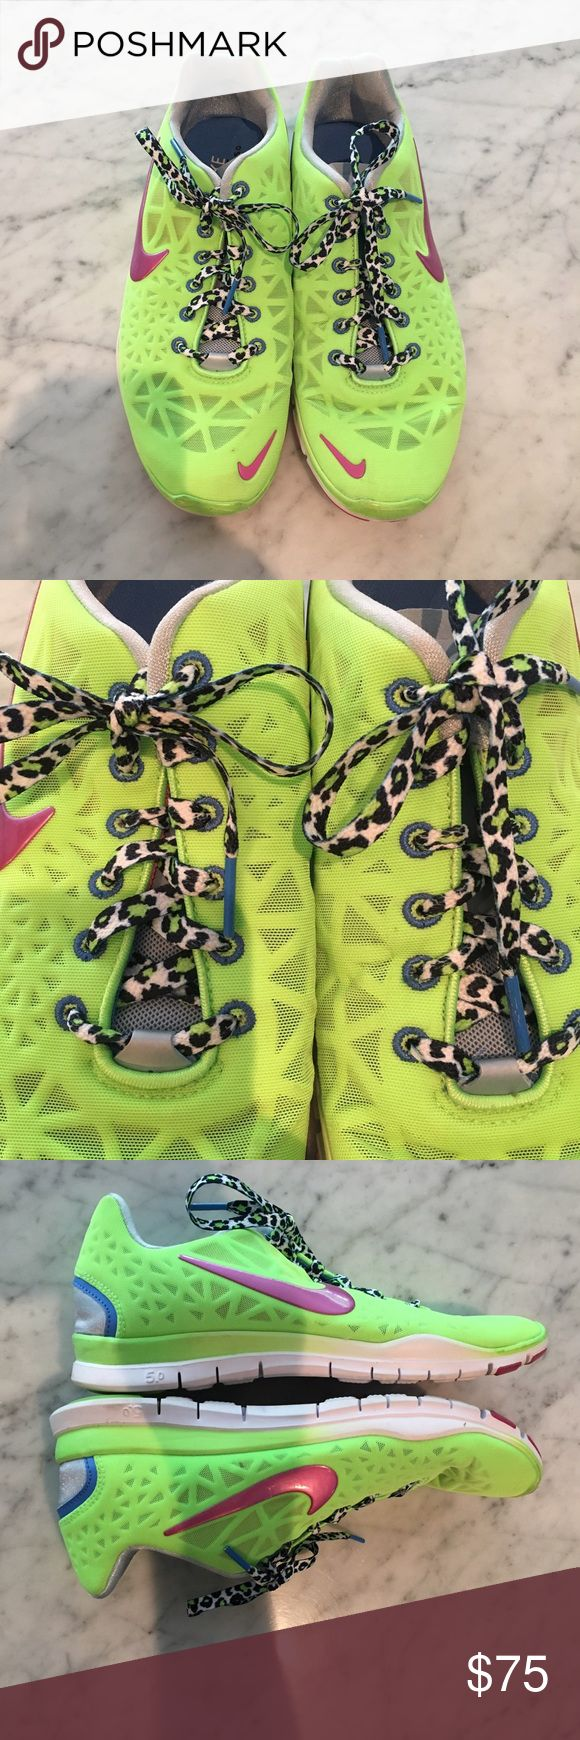 Nike Free 5.0 neon light weight running shoes Super light weight, neon Nike Free 5.0's with cheetah shoe laces and fun color accents Nike Shoes Athletic Shoes